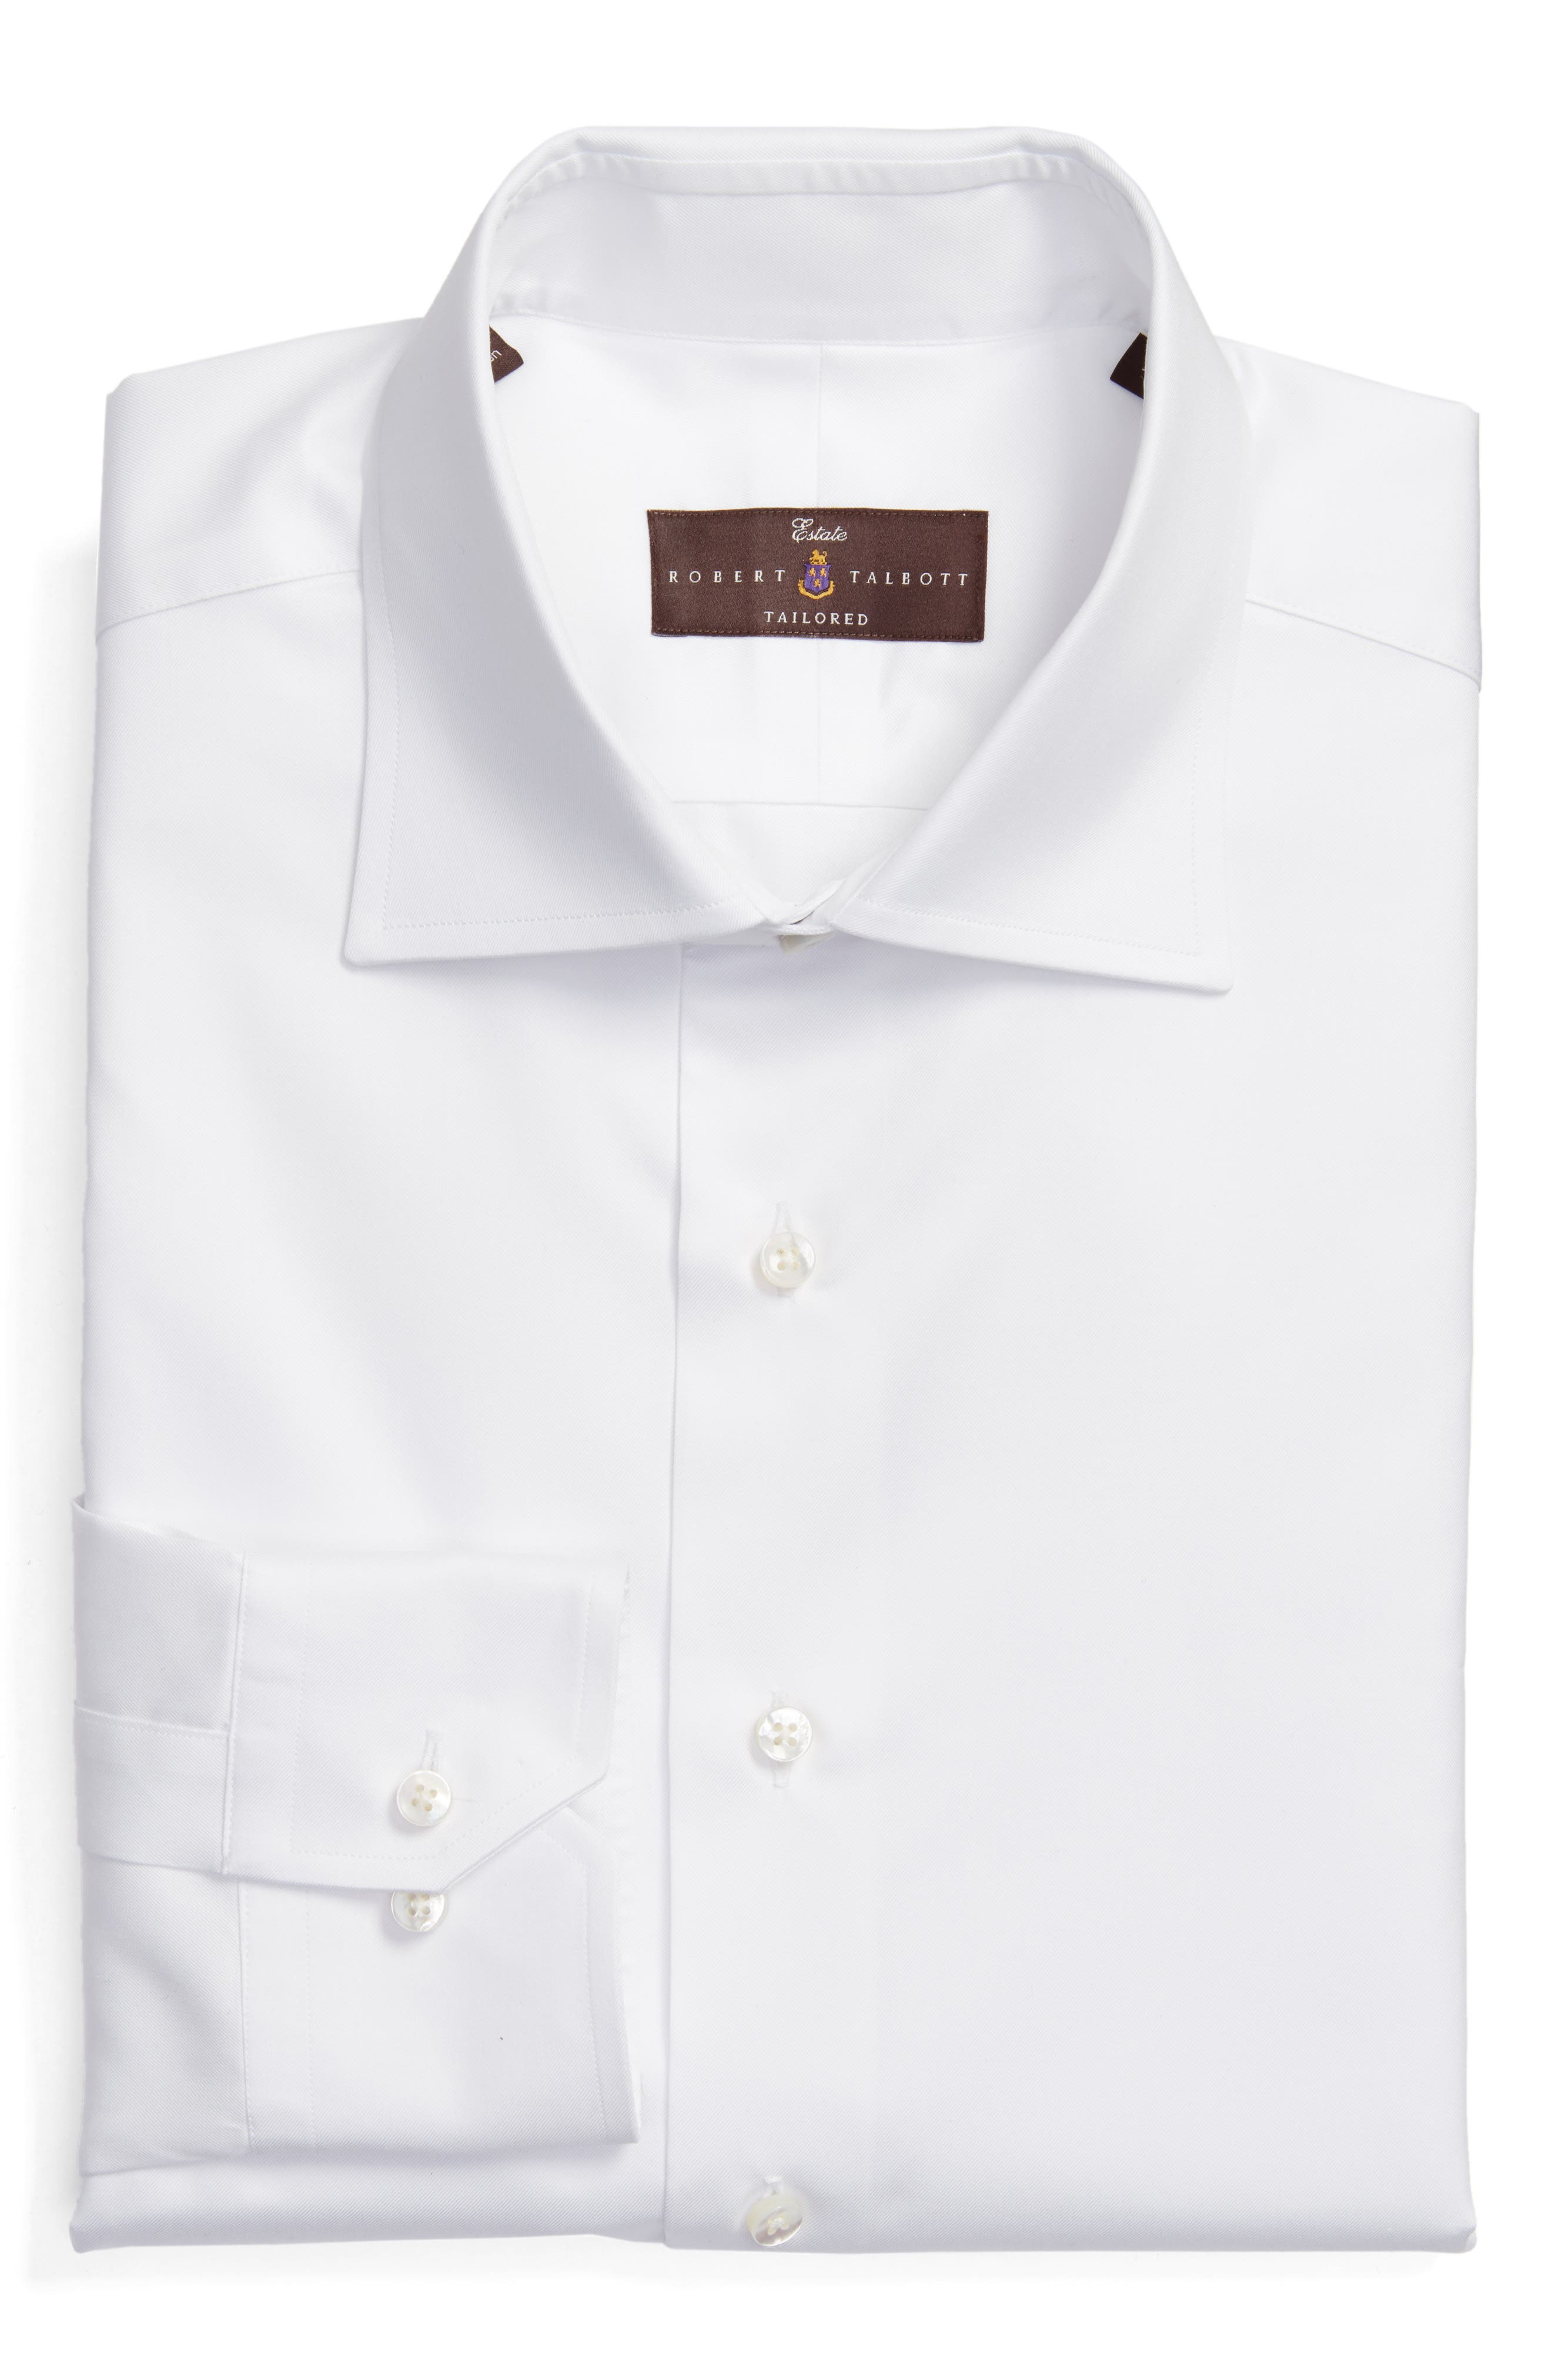 Alternate Image 1 Selected - Robert Talbott Tailored Fit Solid Dress Shirt